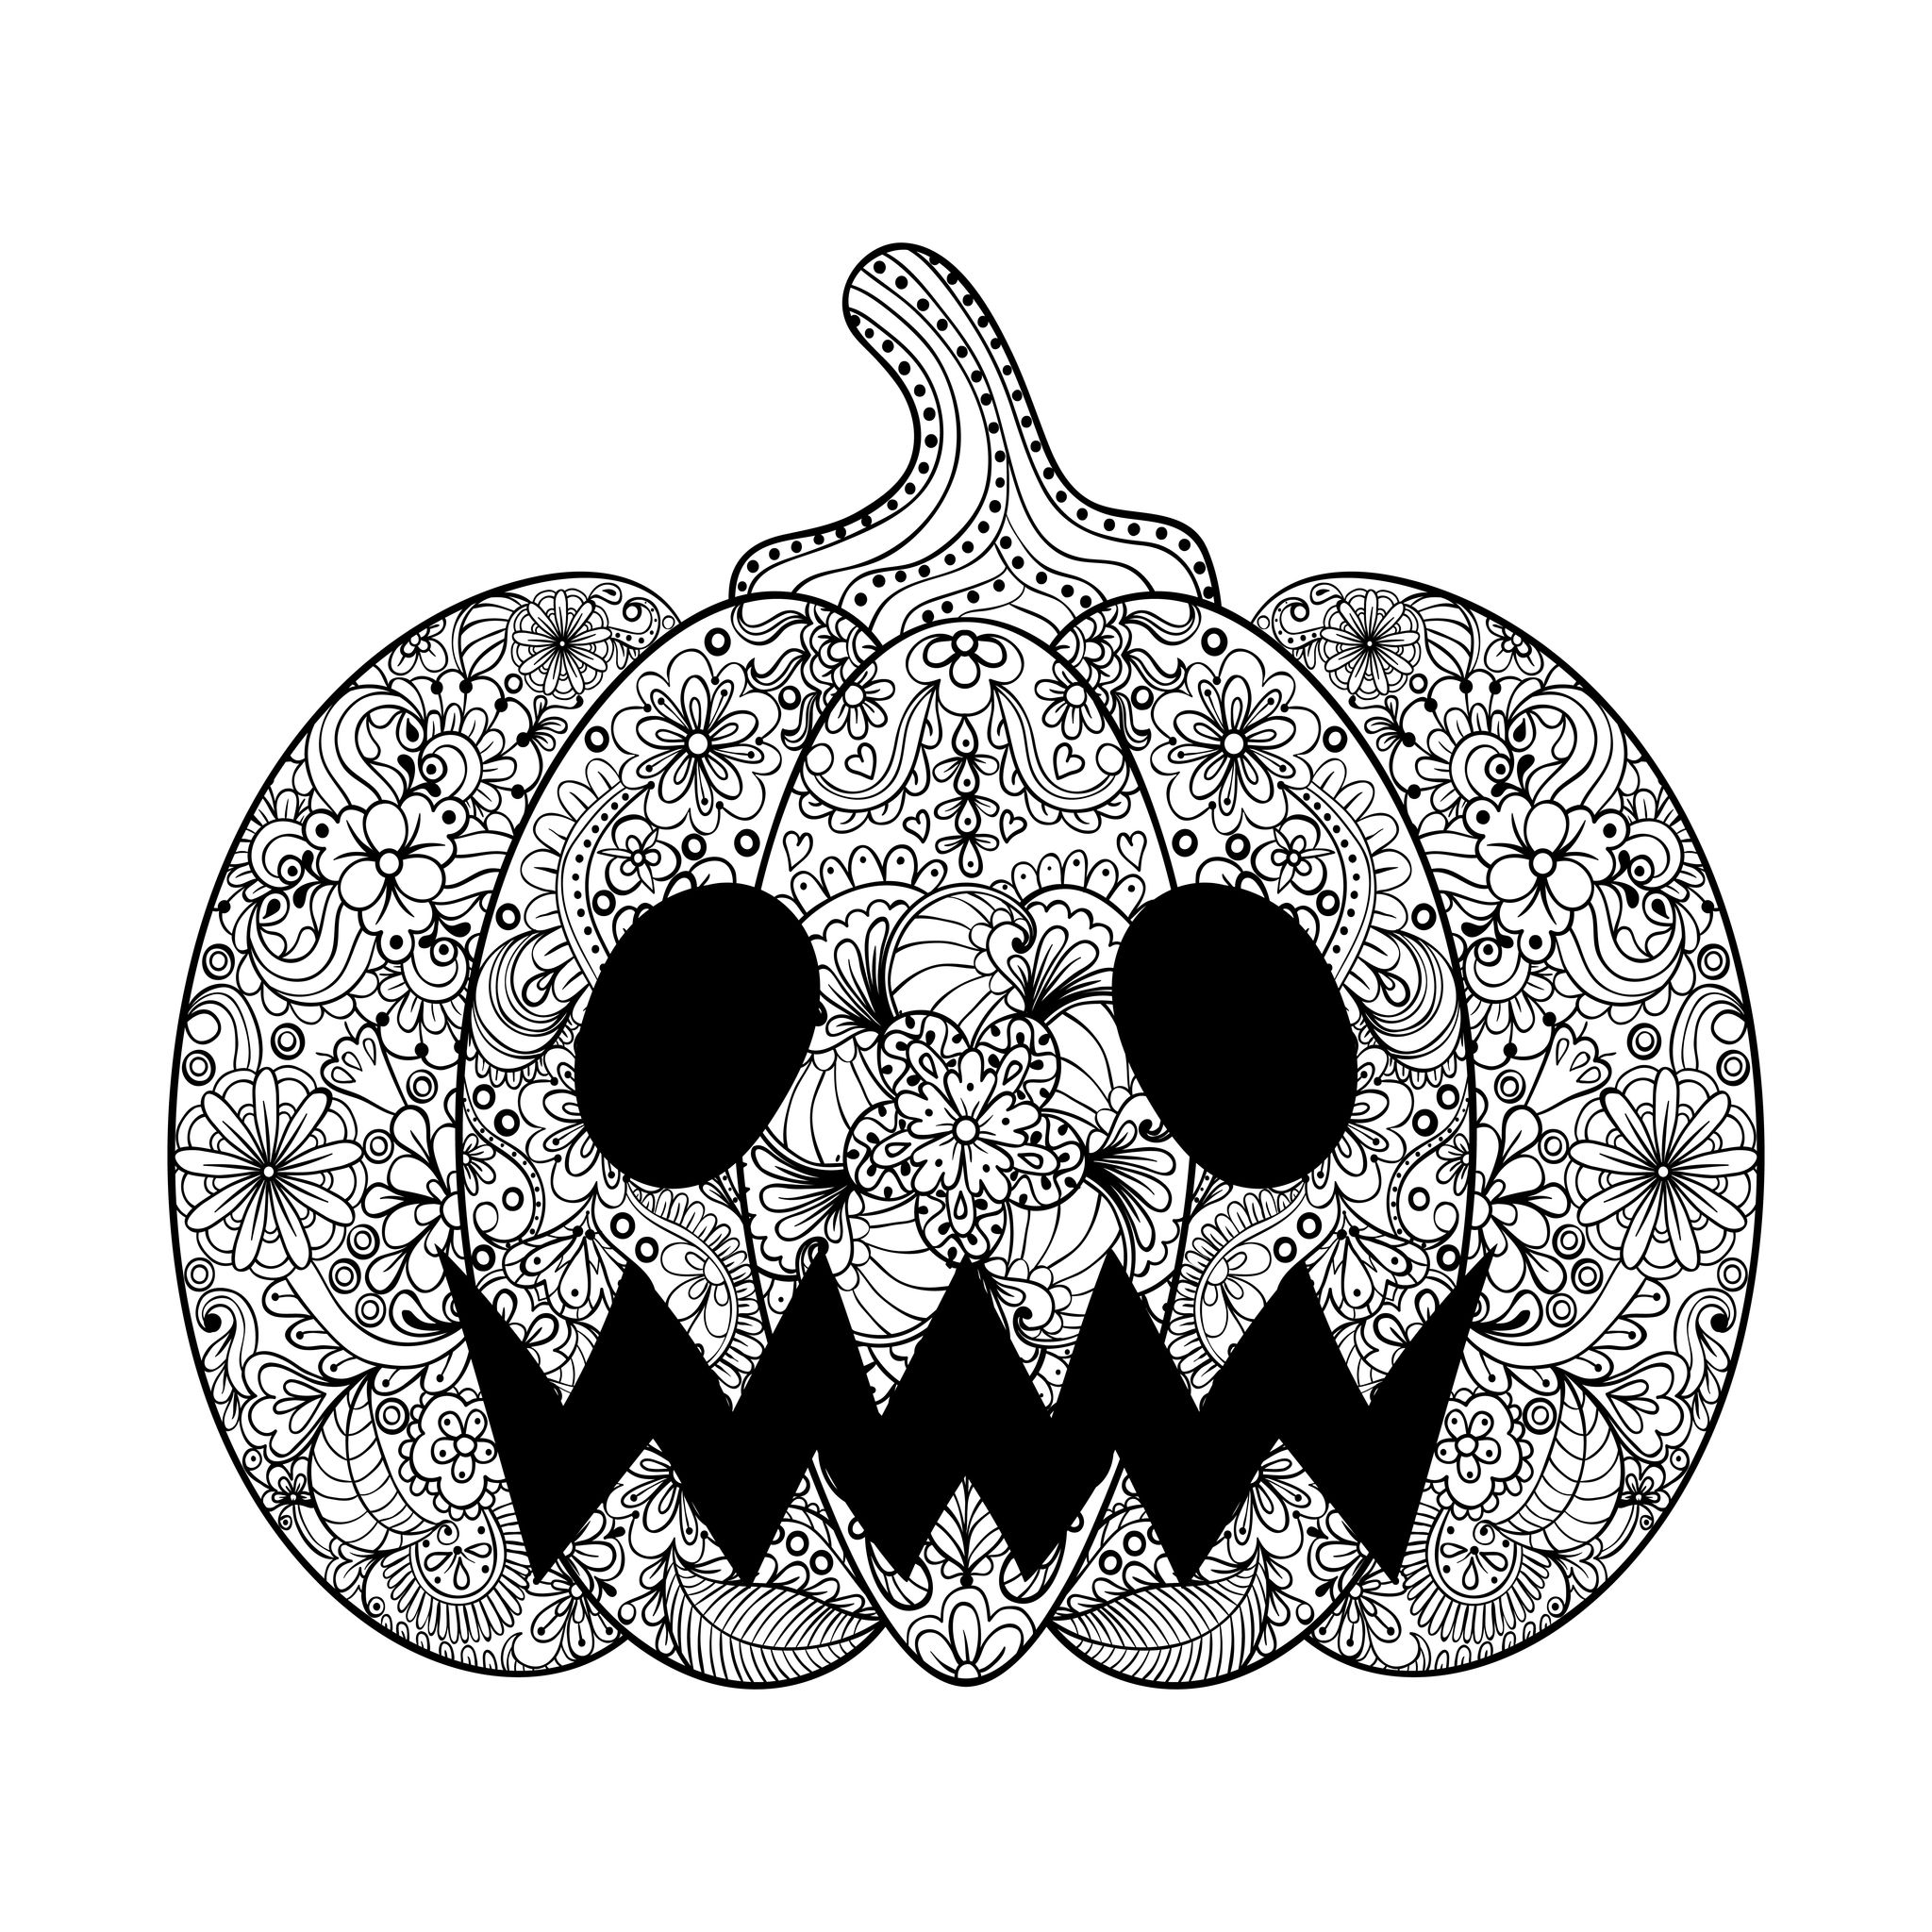 Coloring pages for halloween coloring contest - Coloring Adult Halloween Scary Pumpkin By Ipanki